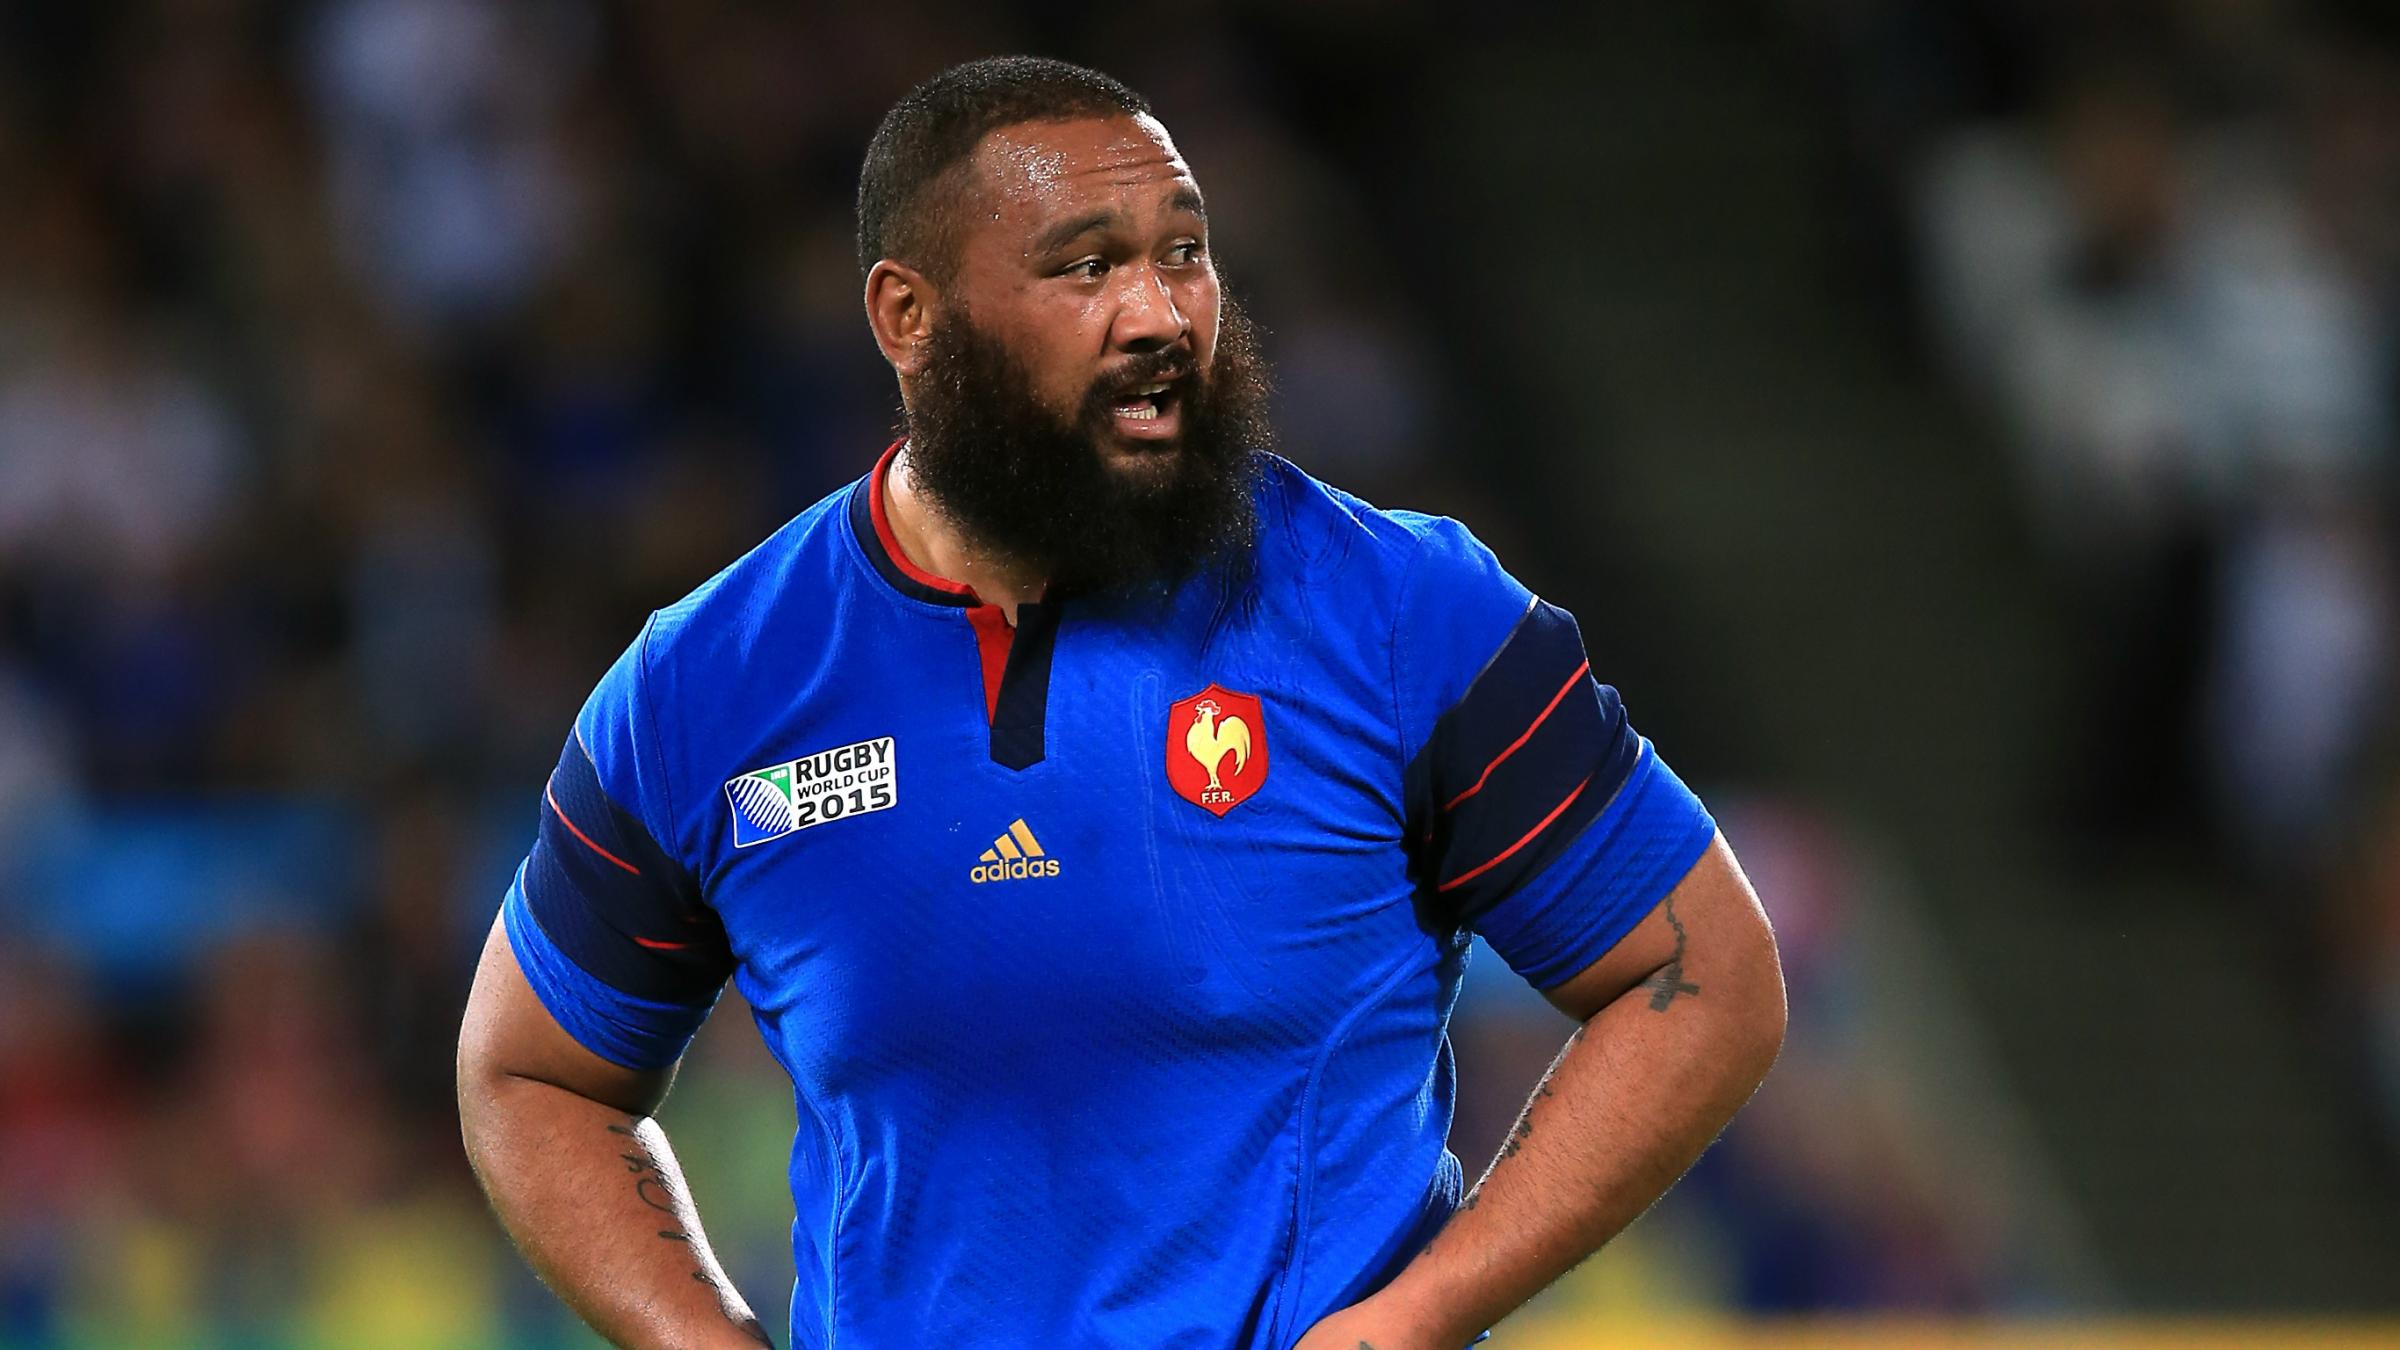 Uini Atonio: France rebuked over head injury prop swap against Wales